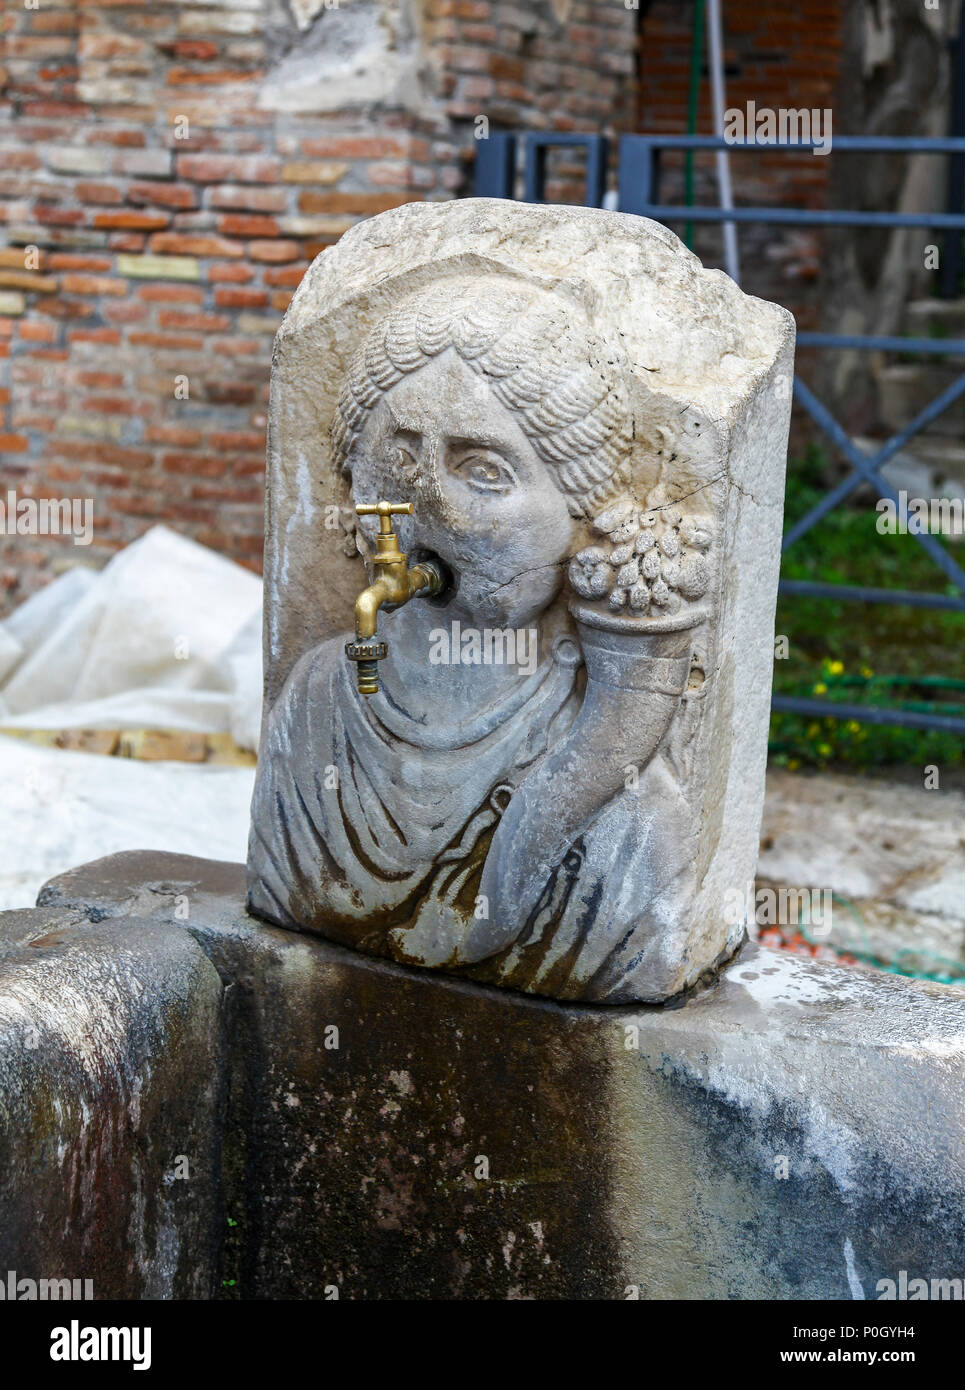 A water tap coming out of the mouth of a stone fountain in the shape of a persons head at the Pompeii Archaeological site, Pompeii, Campania, Italy, - Stock Image